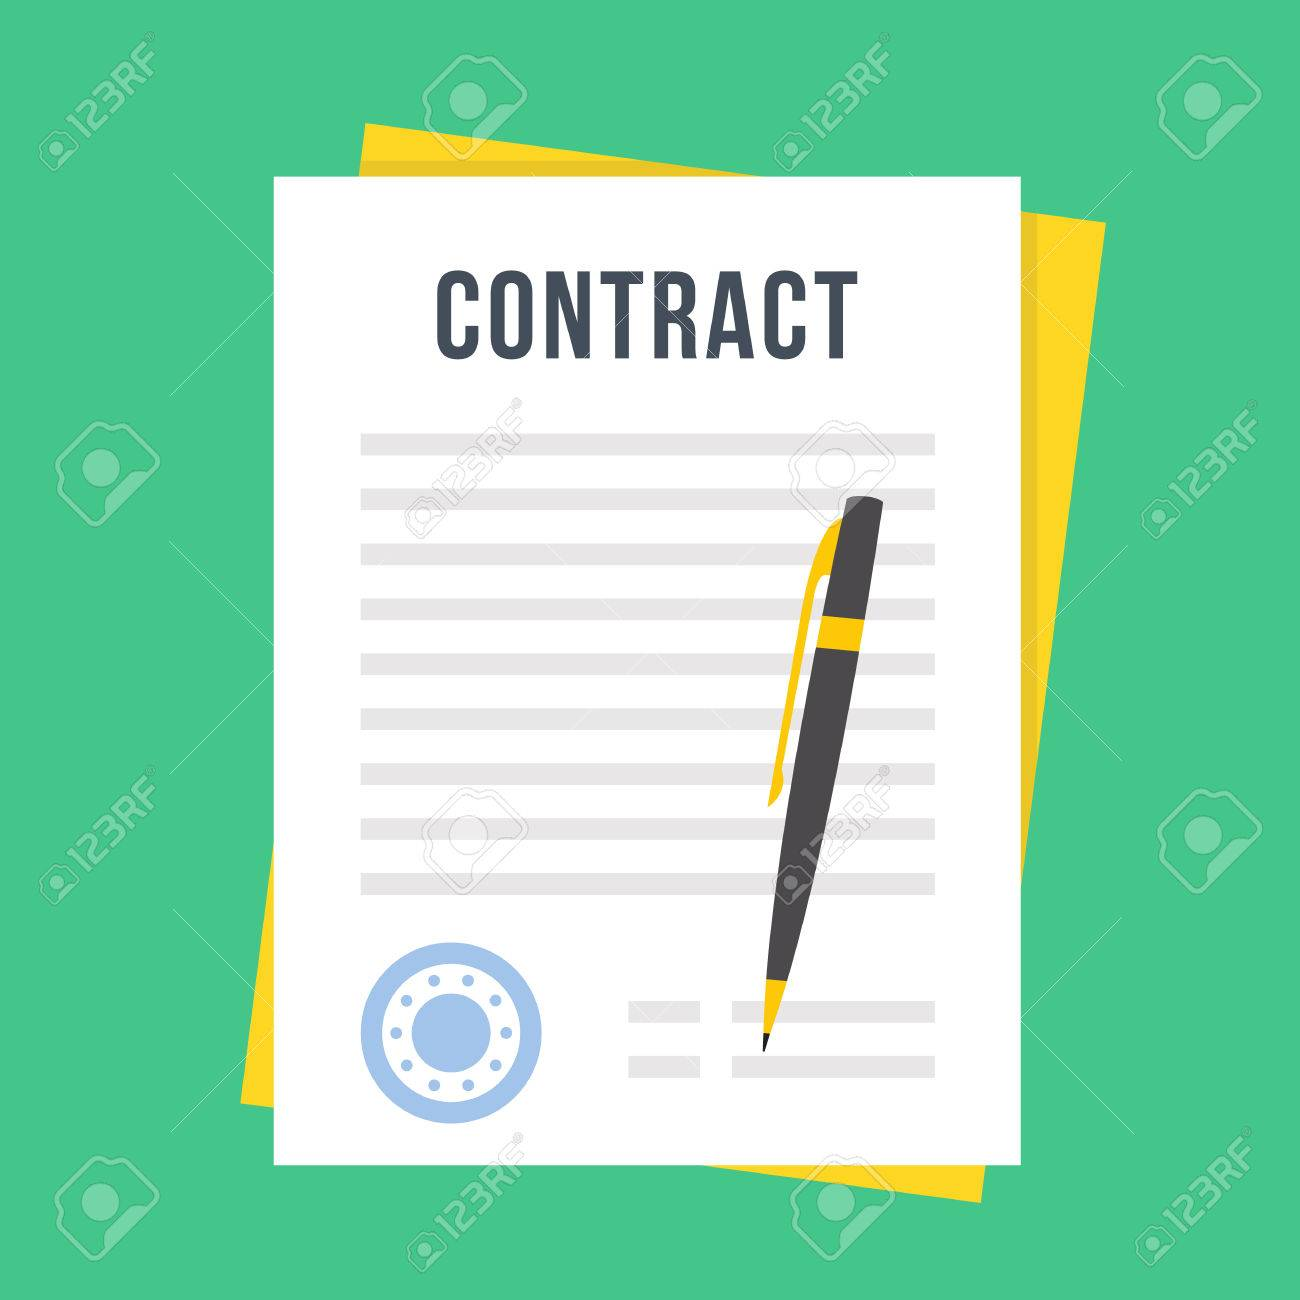 Contract document with rubber stamp and pen. Sign contract concept. Flat style design vector illustration - 61213429